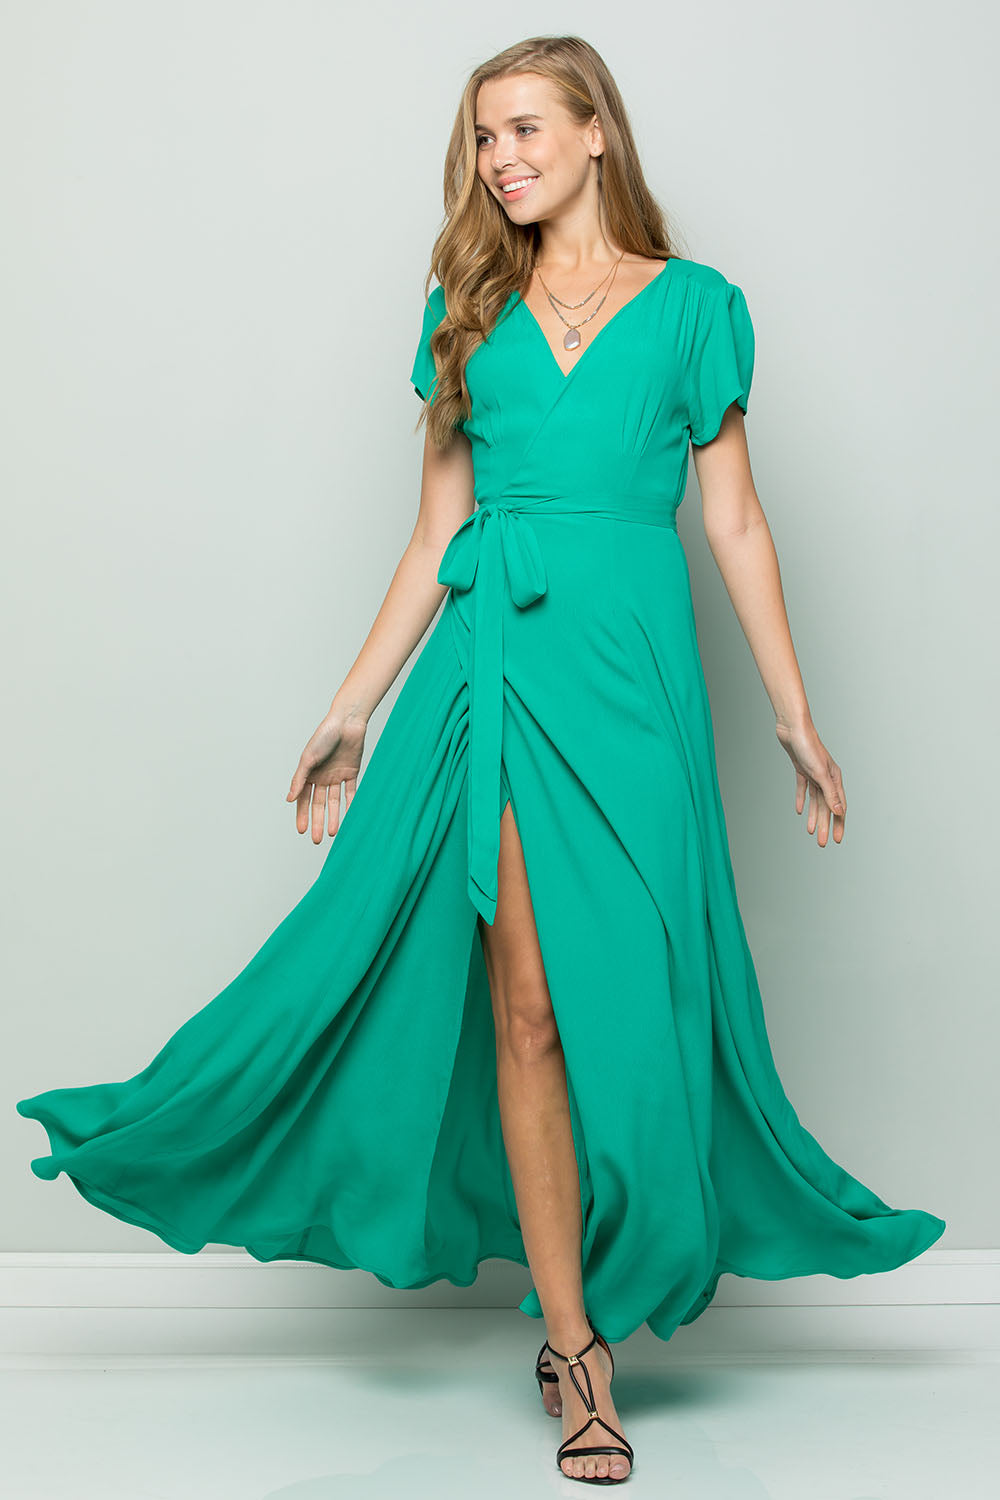 FLOWY MAXI WRAP DRESS - Emerald